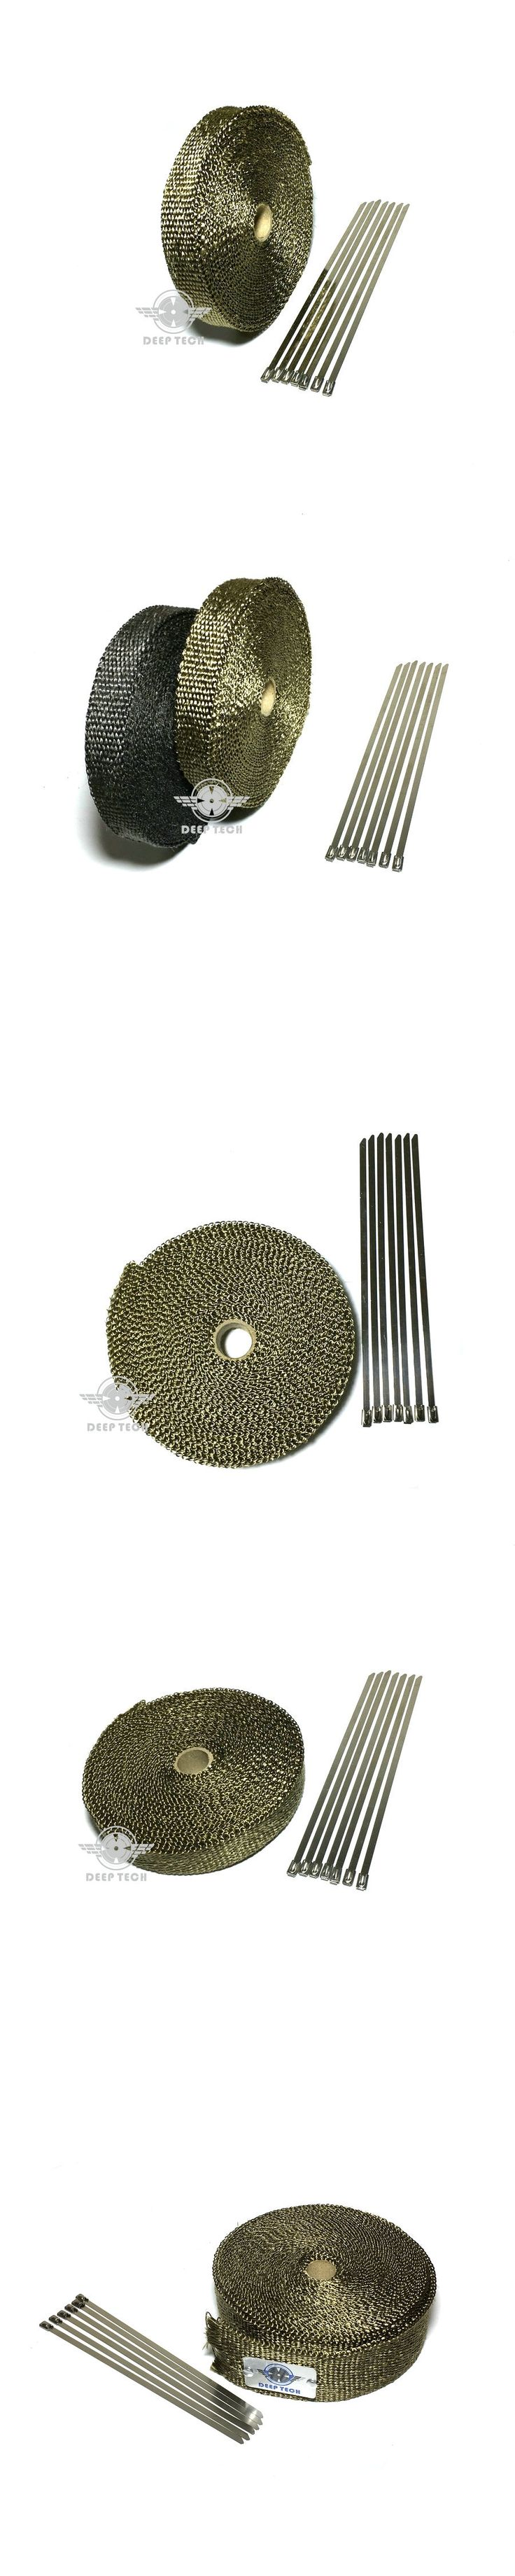 15m/50ft x 2inch Thermal Exhaust Tape Titanium Exhaust Heat Tape Lava Exhaust Wrap For Motorcycle Exhaust Pipe With Cable Ties